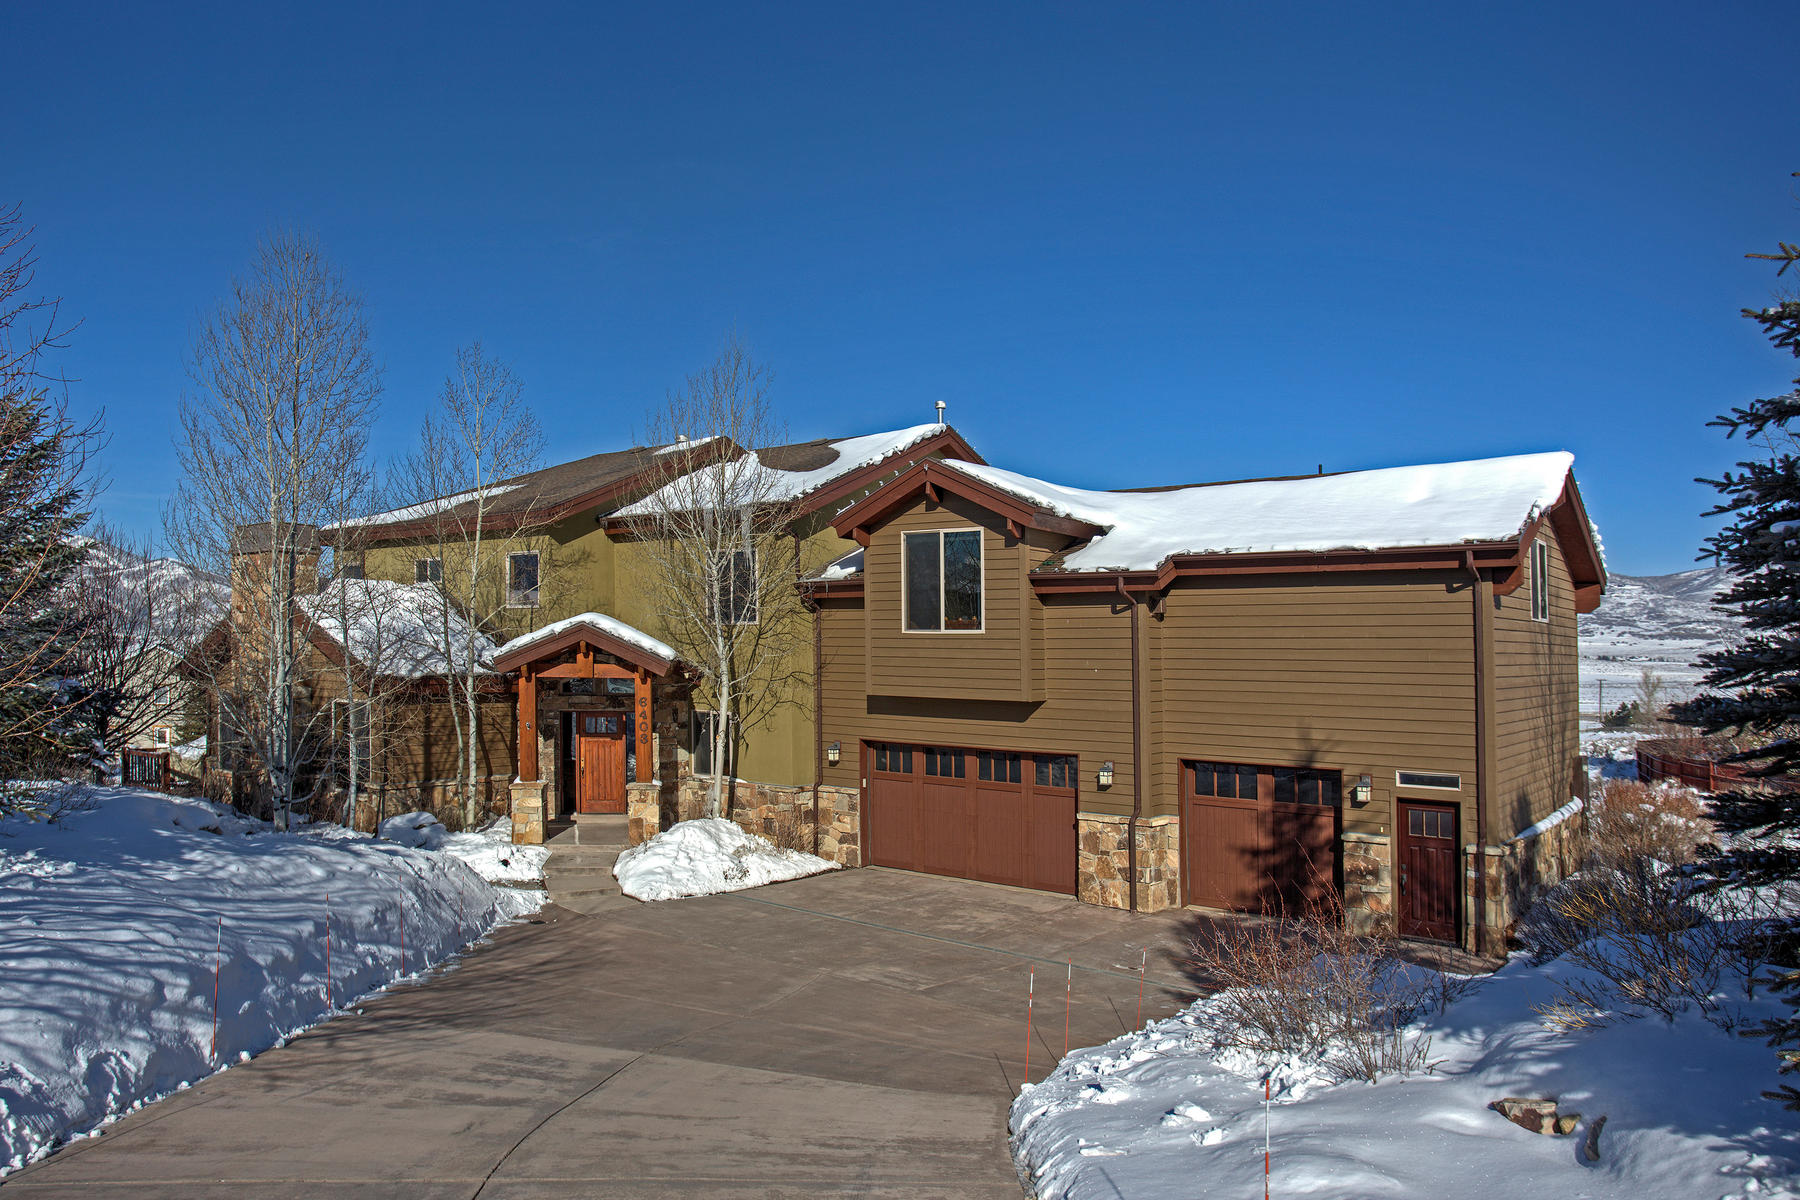 Single Family Home for Sale at Sophisticated Style, Spectacular Ski Resort Views 6403 N Snow View Dr Park City, Utah, 84098 United States